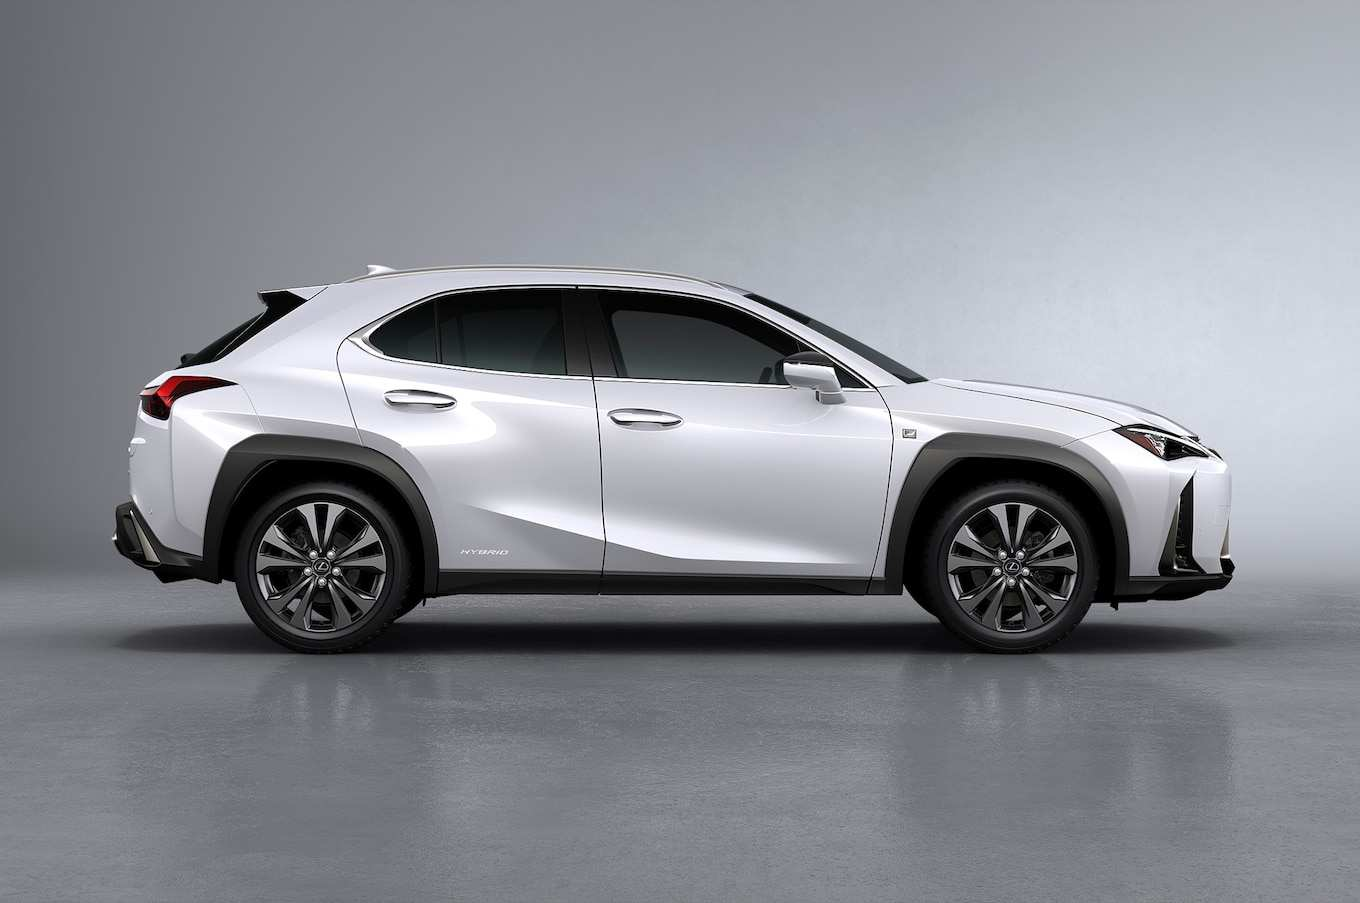 35 Great Lexus 2019 Ux Release Date Price and Review by Lexus 2019 Ux Release Date